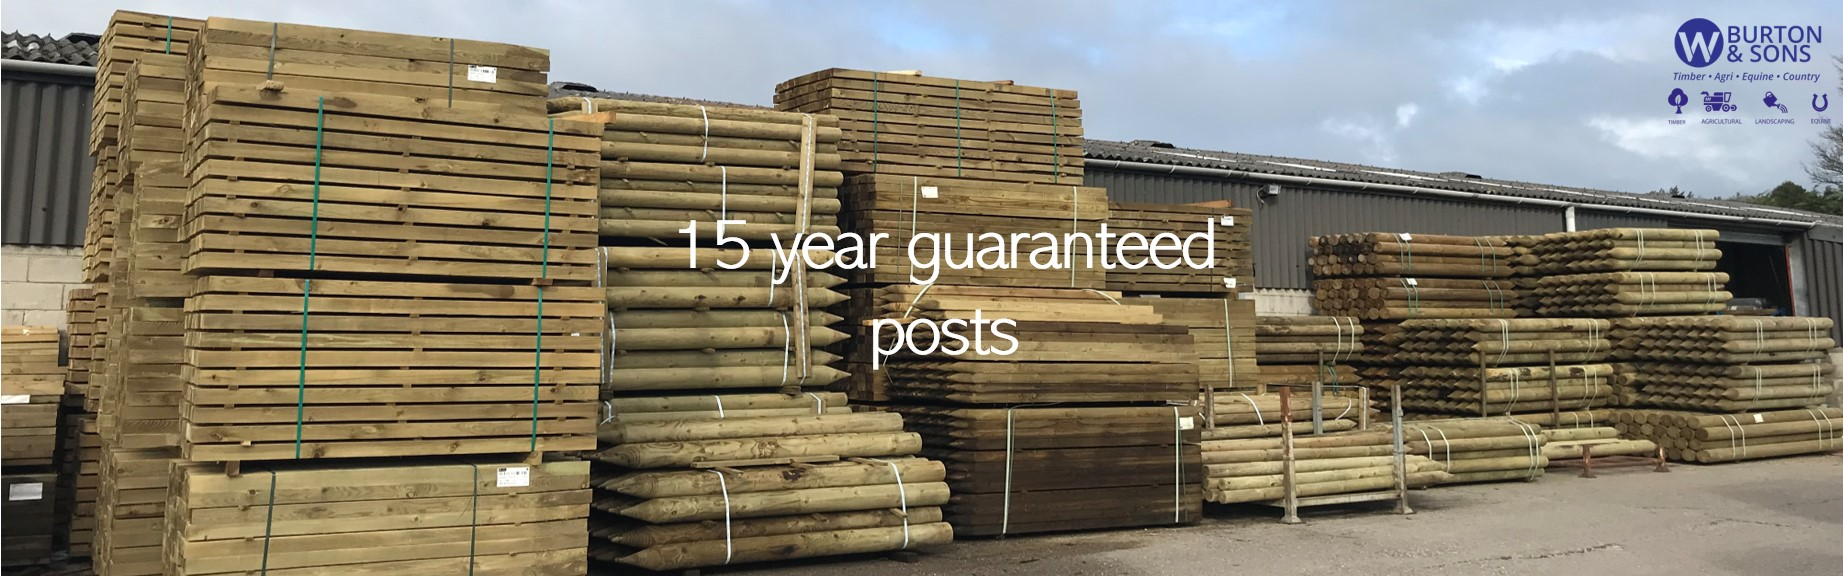 15 year Guaranteed Posts at W Burton Slider